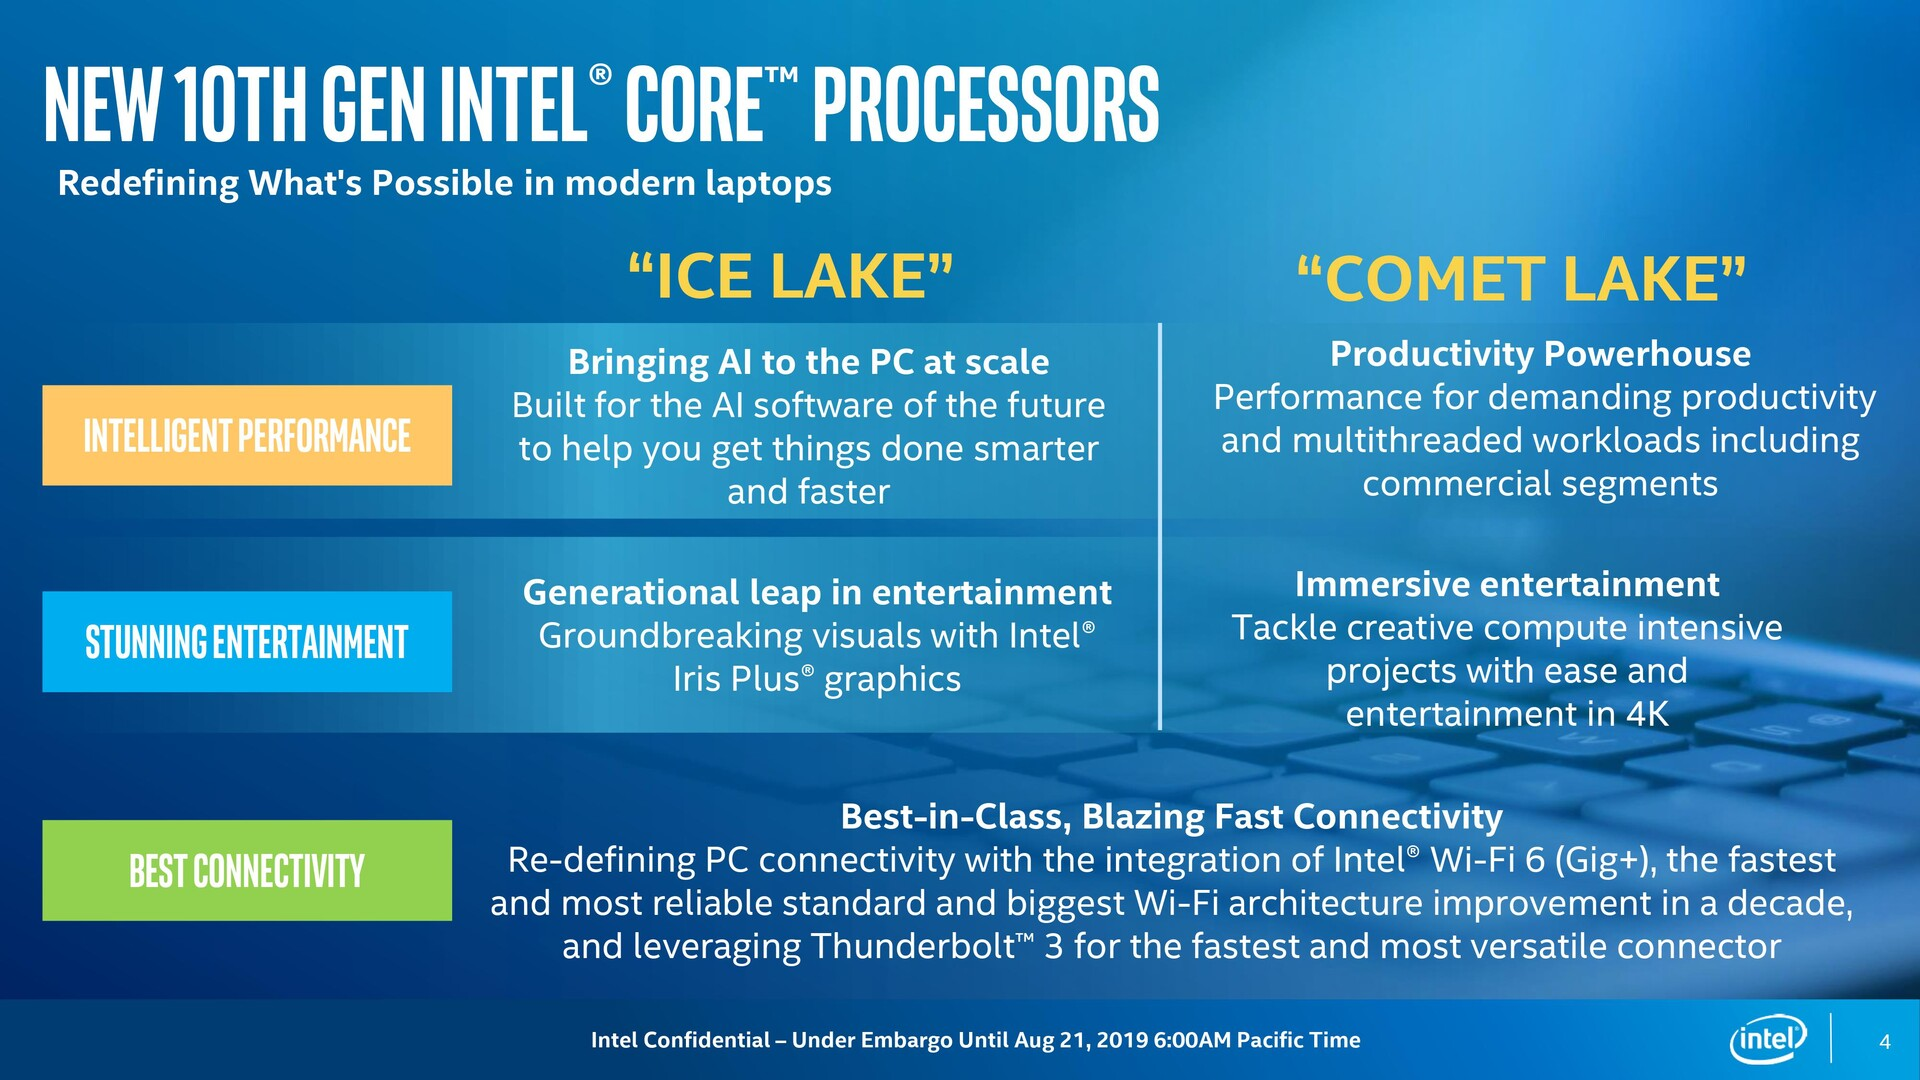 Dell Adds 'Comet Lake' Chips to XPS, Inspiron, Vostro Laptops